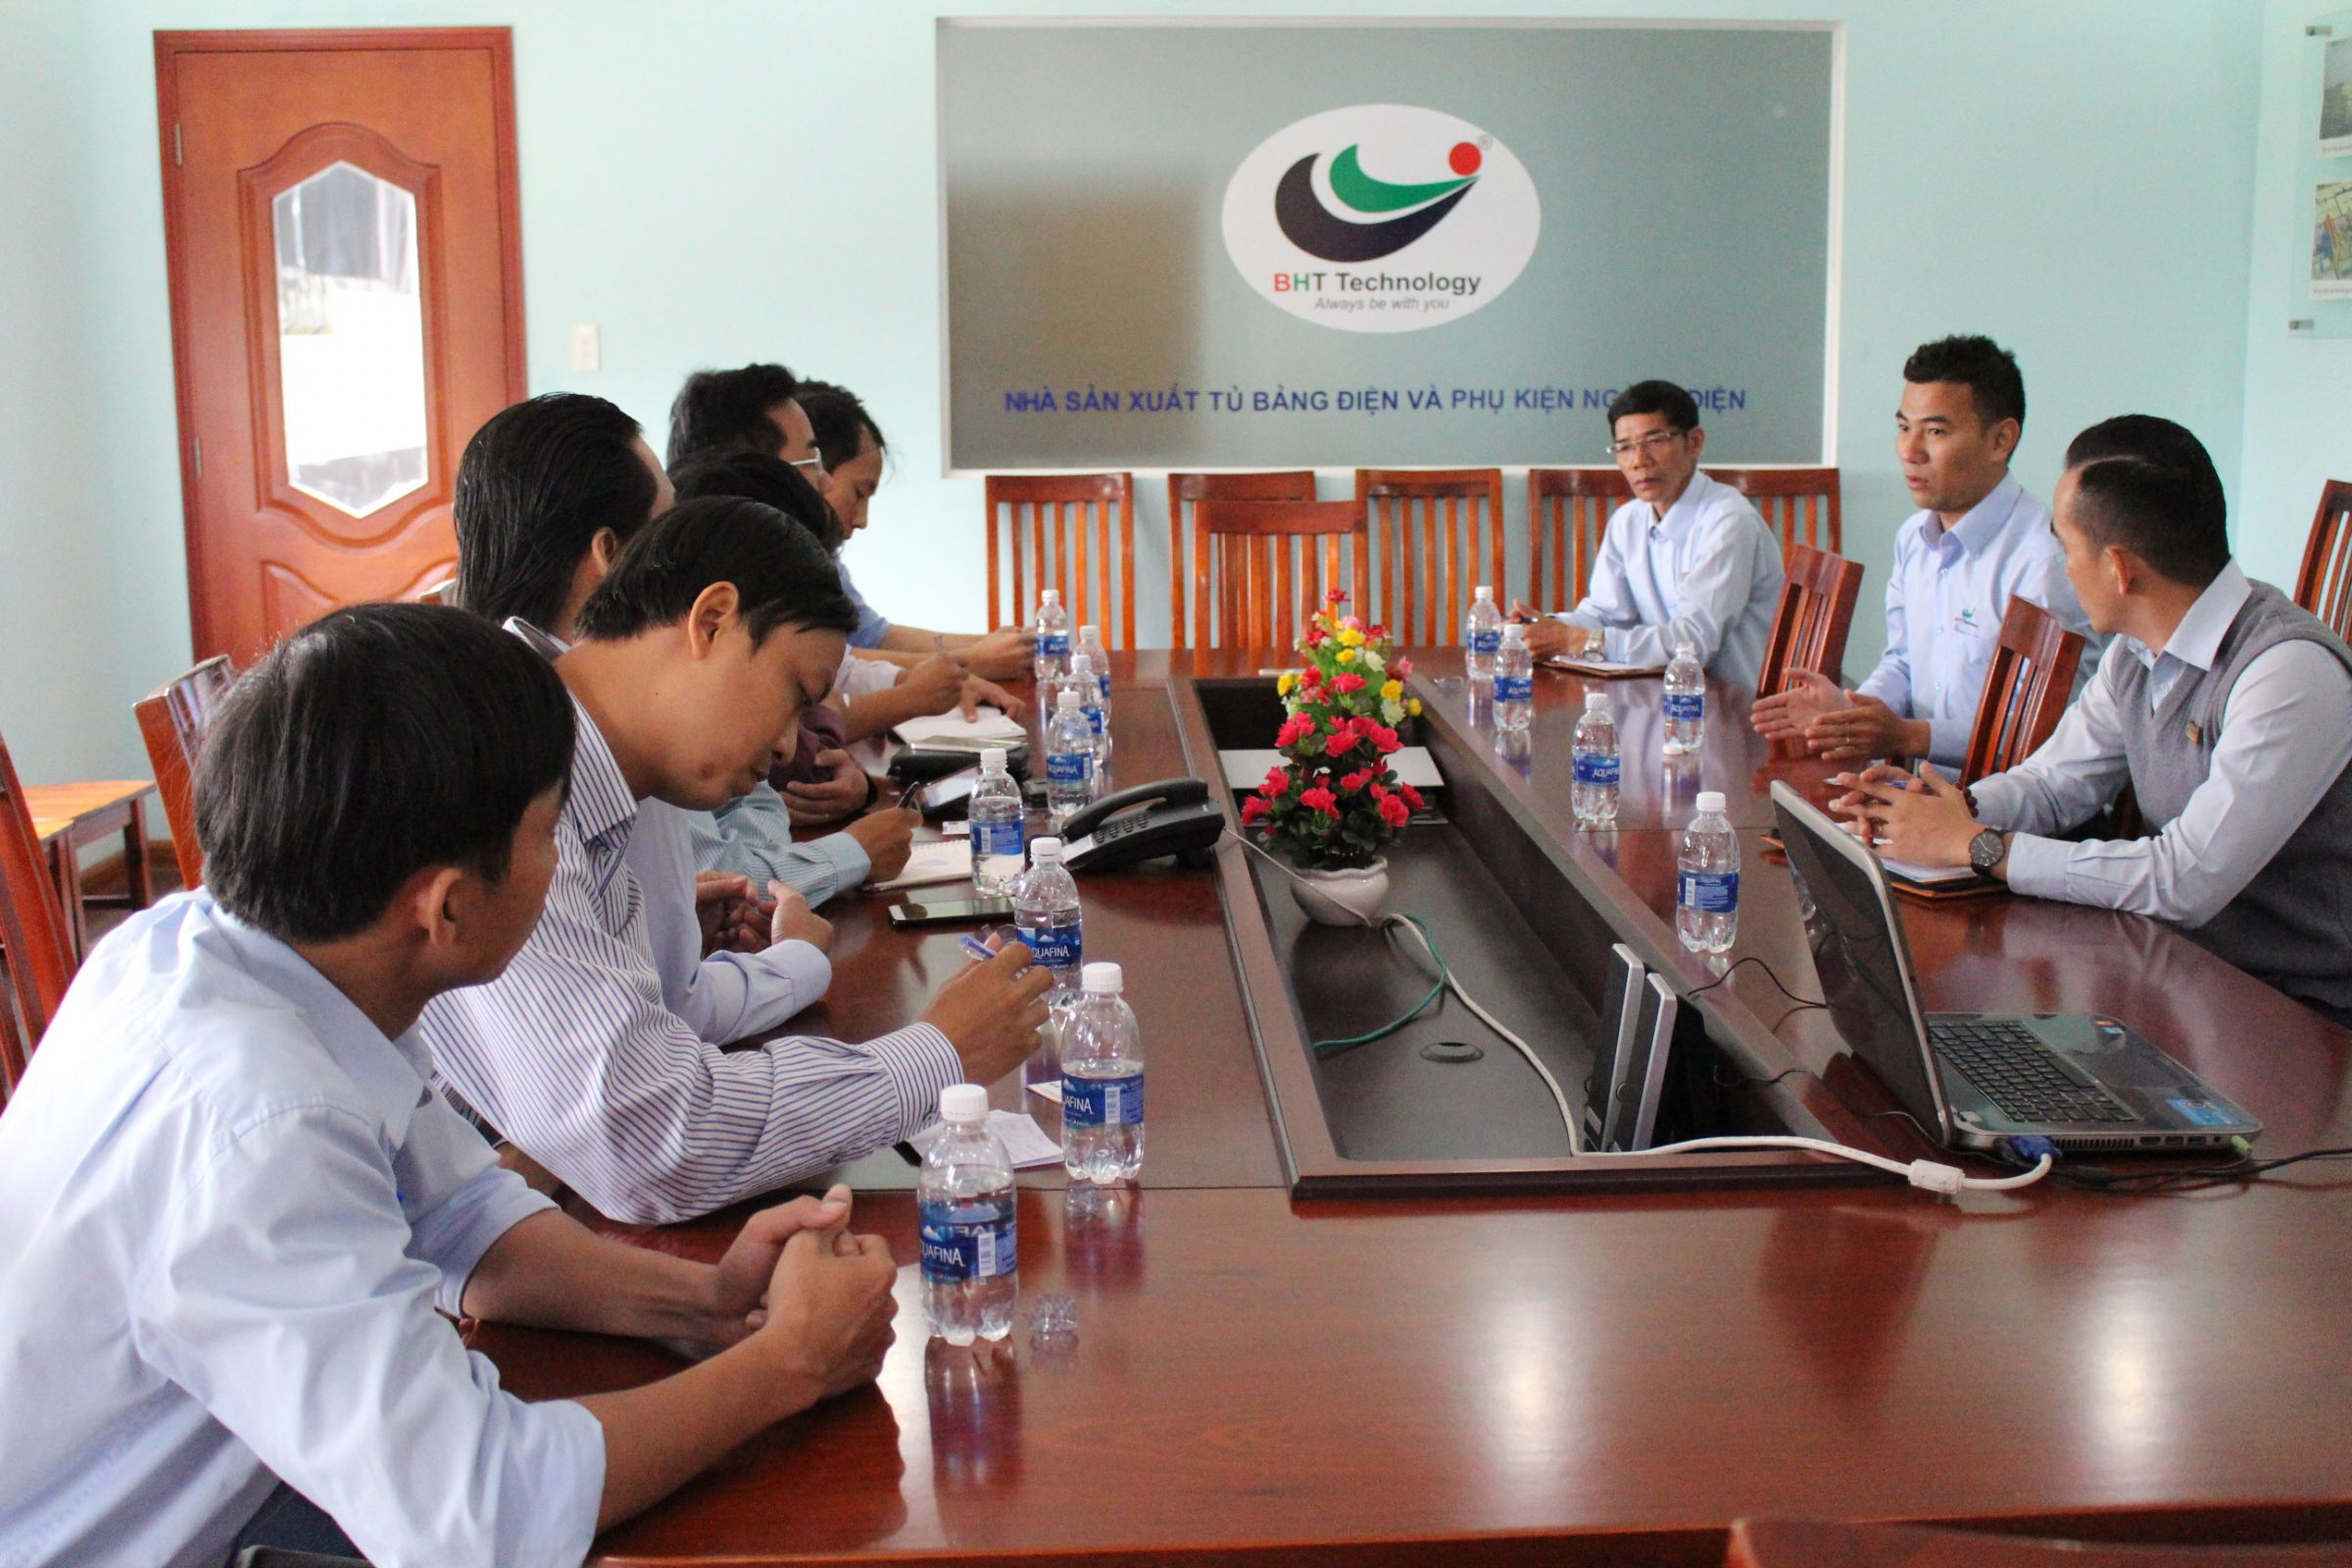 NGUYEN TAT THANH UNIVERSITY  VISITED BHT Technology FACTORY